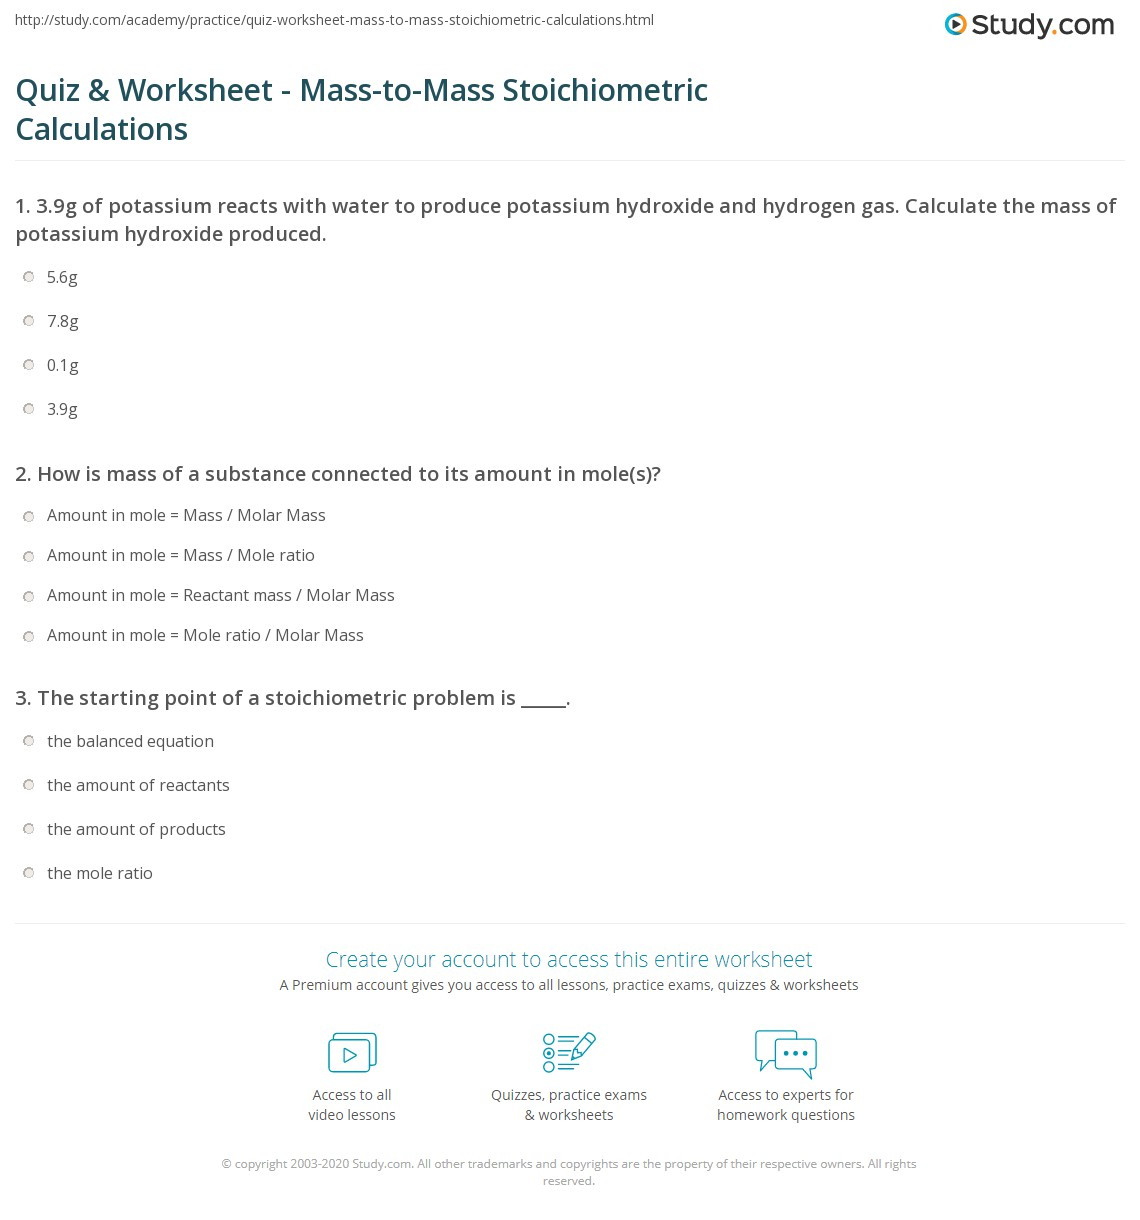 Worksheets Stoichiometry Calculations Worksheet quiz worksheet mass to stoichiometric calculations study com print worksheet